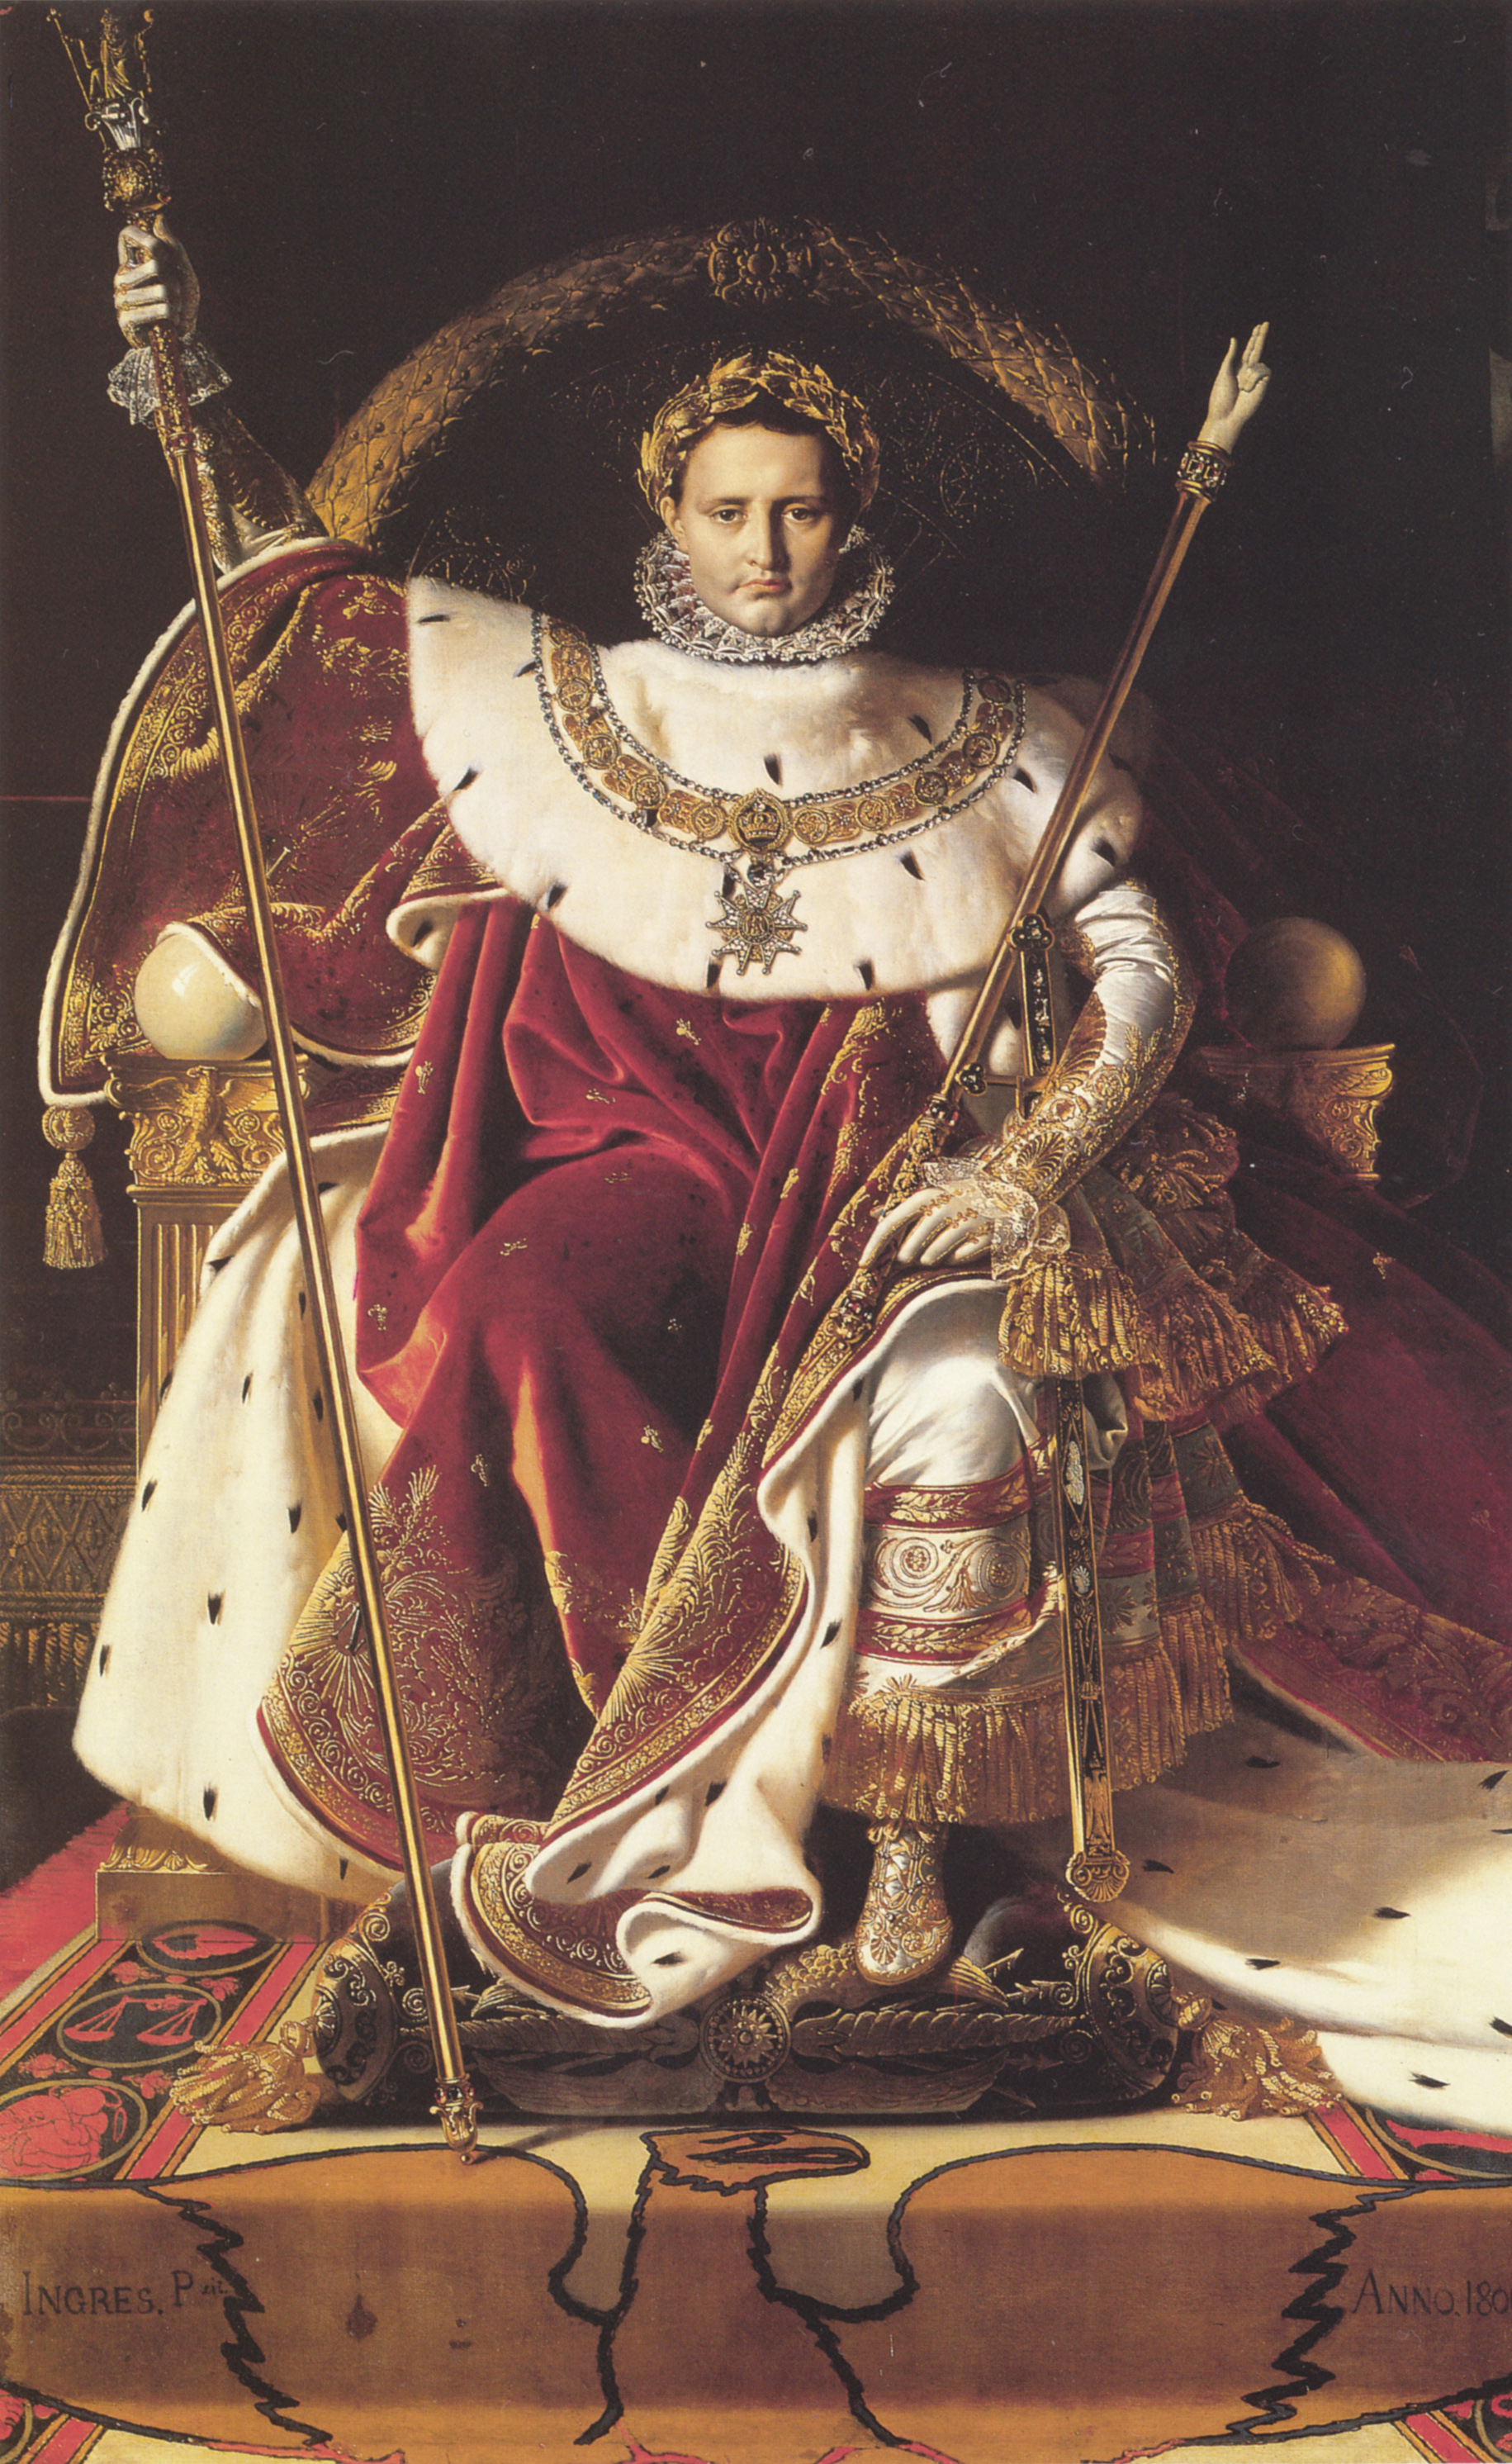 Portrait of Napoléon on the Imperial Throne, 1806